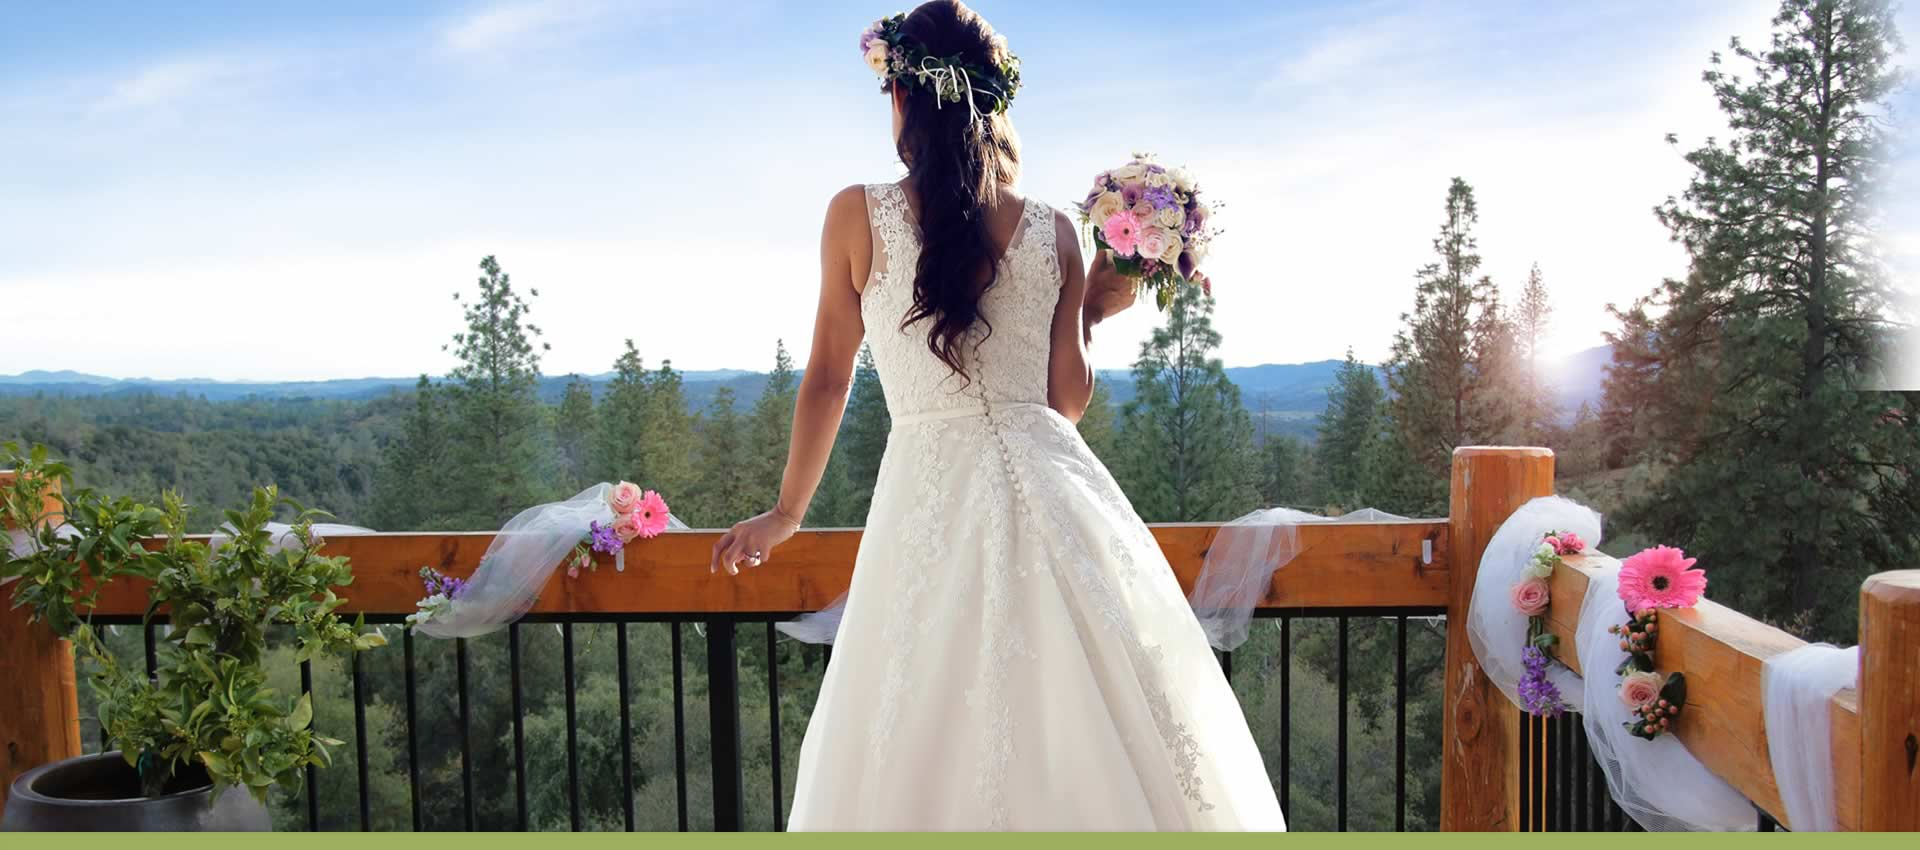 Bride at Courtwood Inn deck enjoying scenic forest view